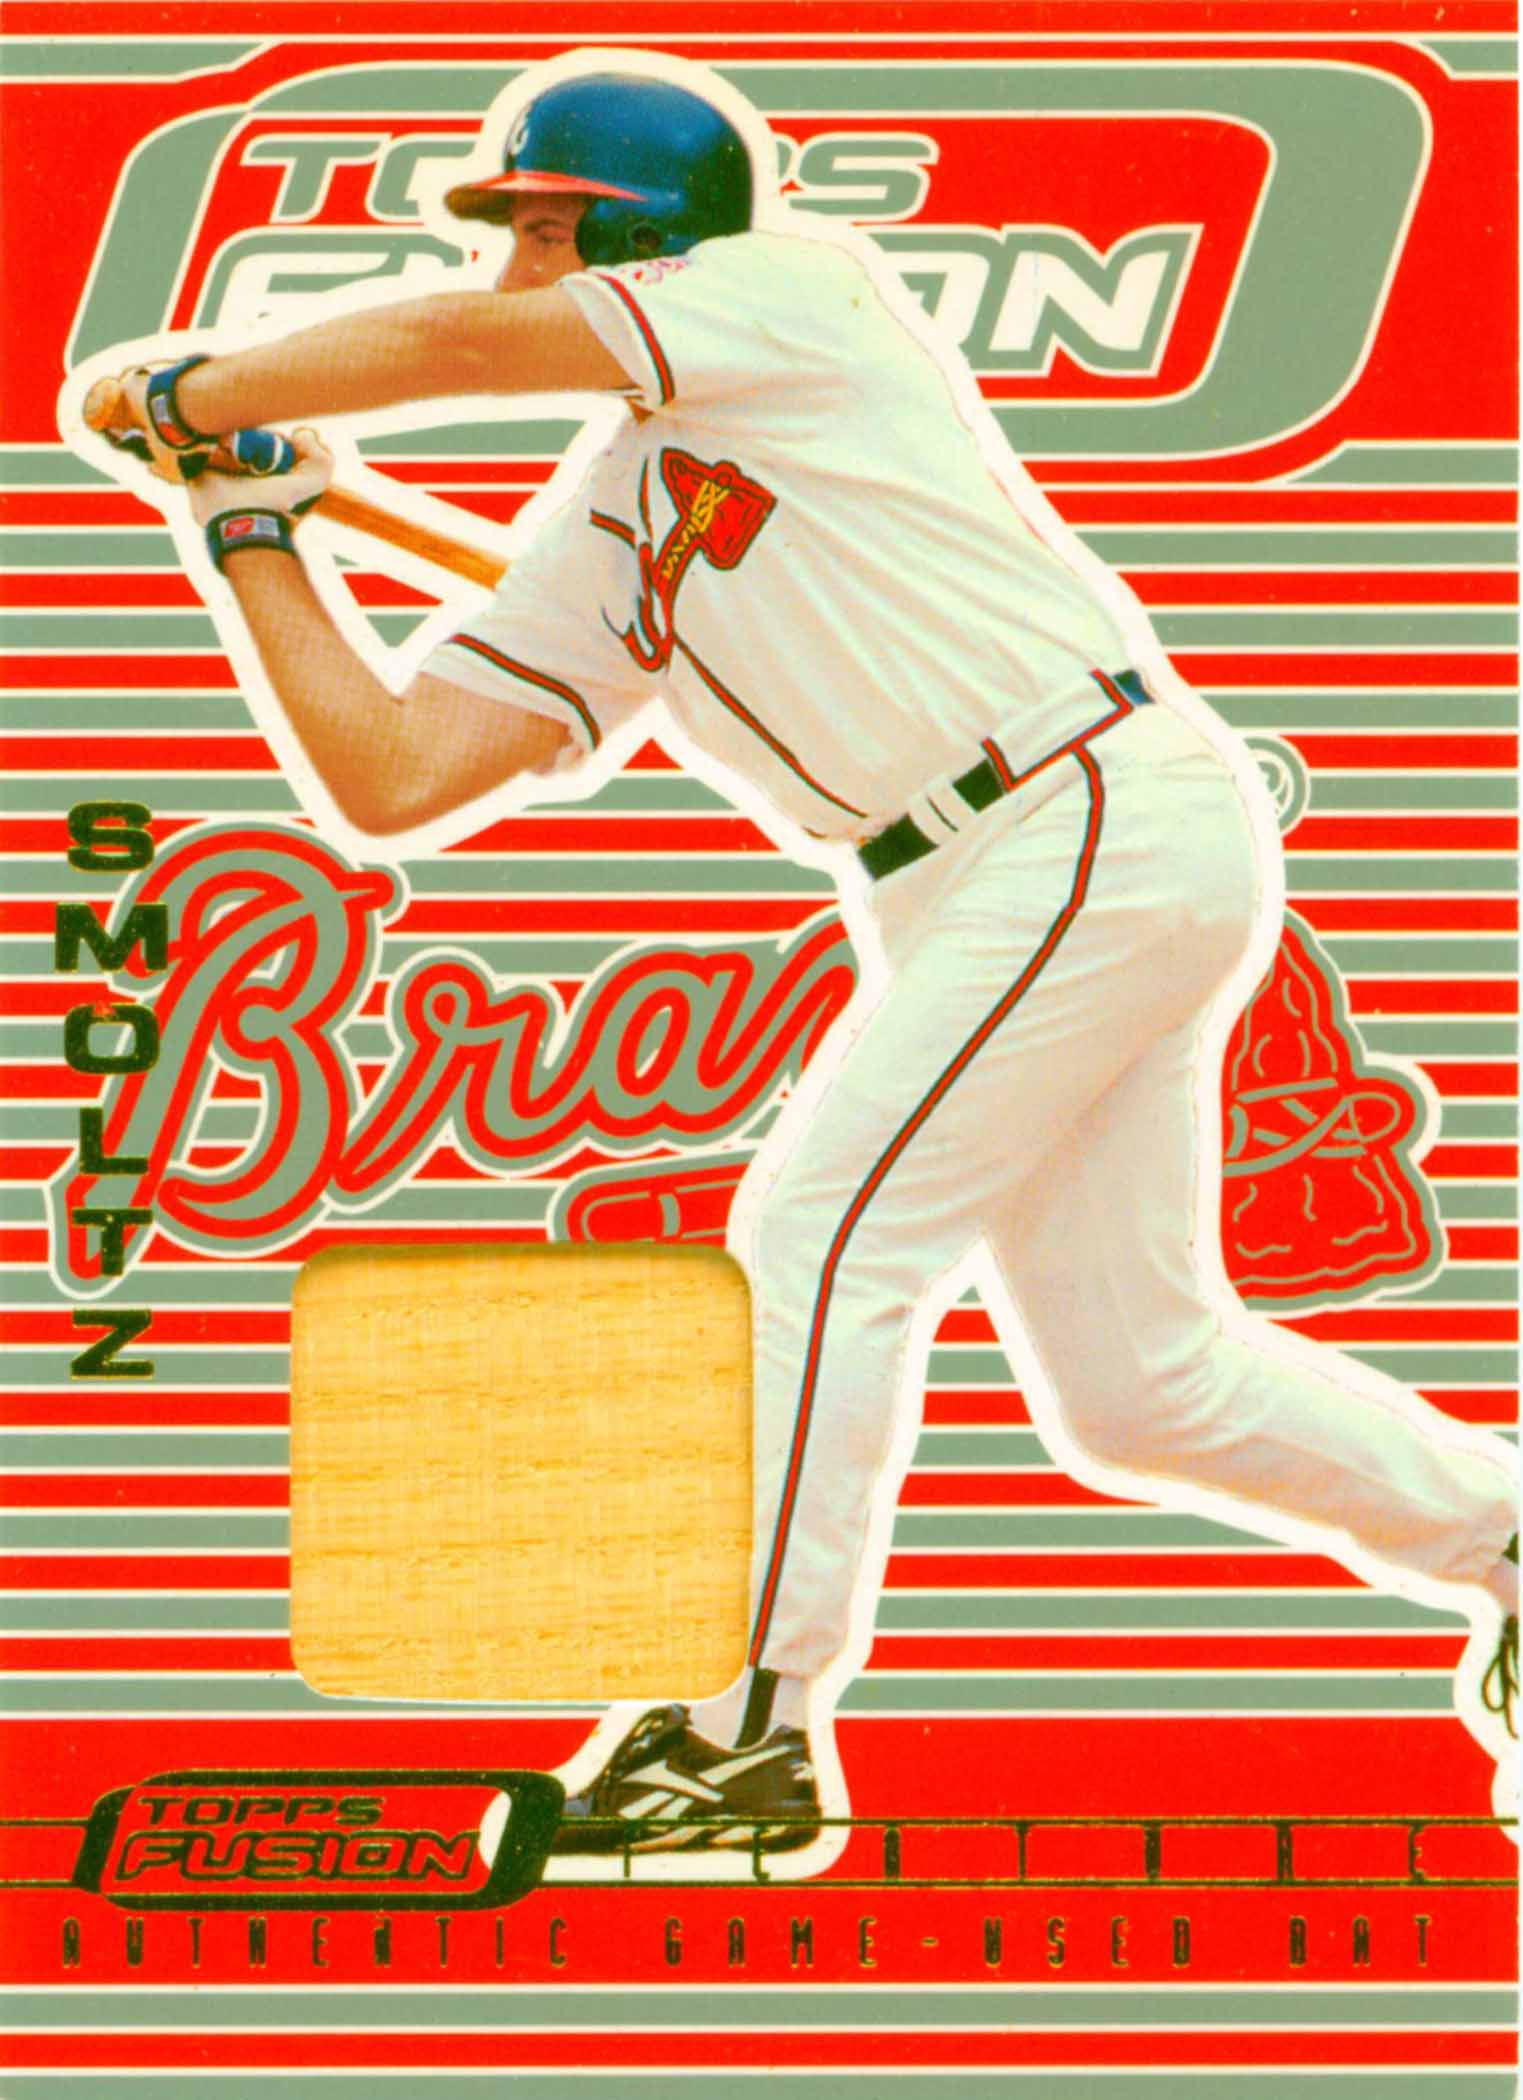 2001 Topps Fusion Feature Bat